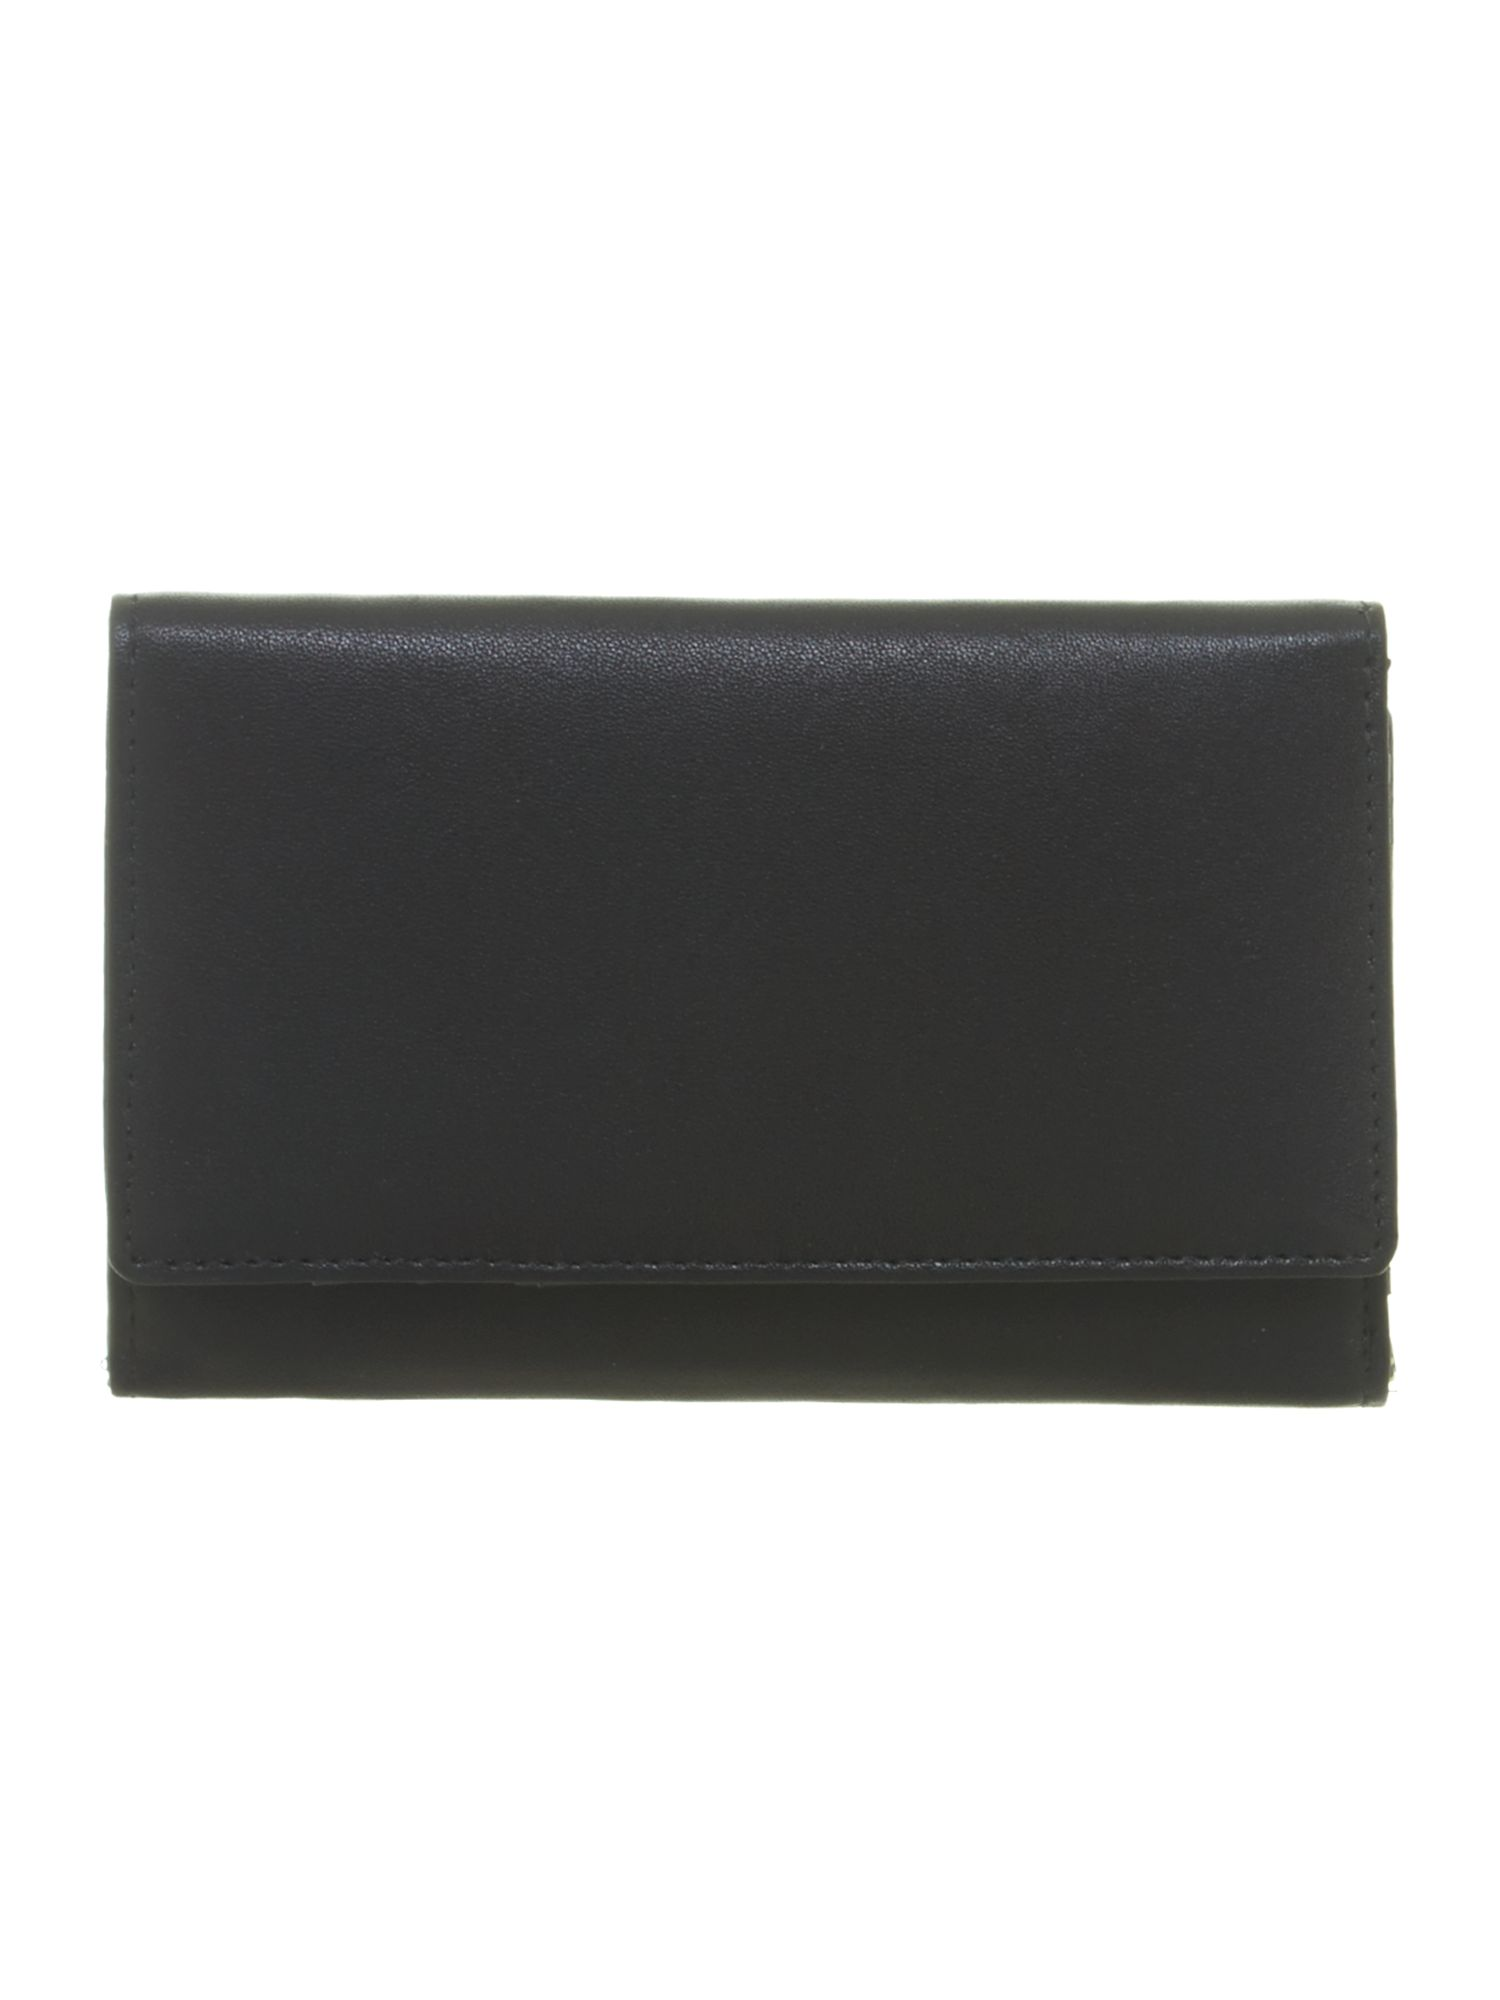 Black with spot internal meduim flapover purse